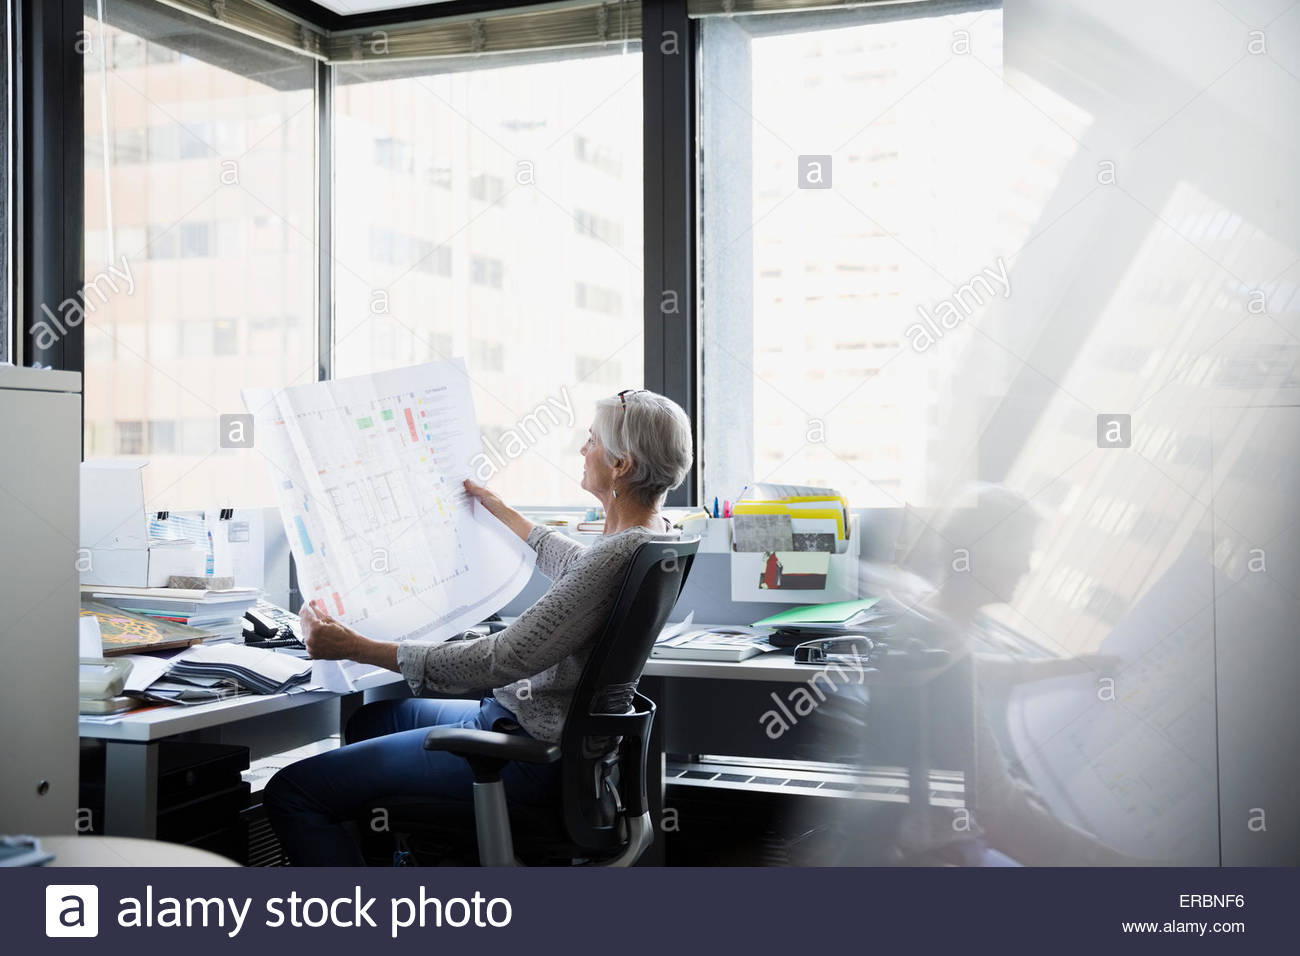 Architect reviewing blueprints at office desk - Stock Image